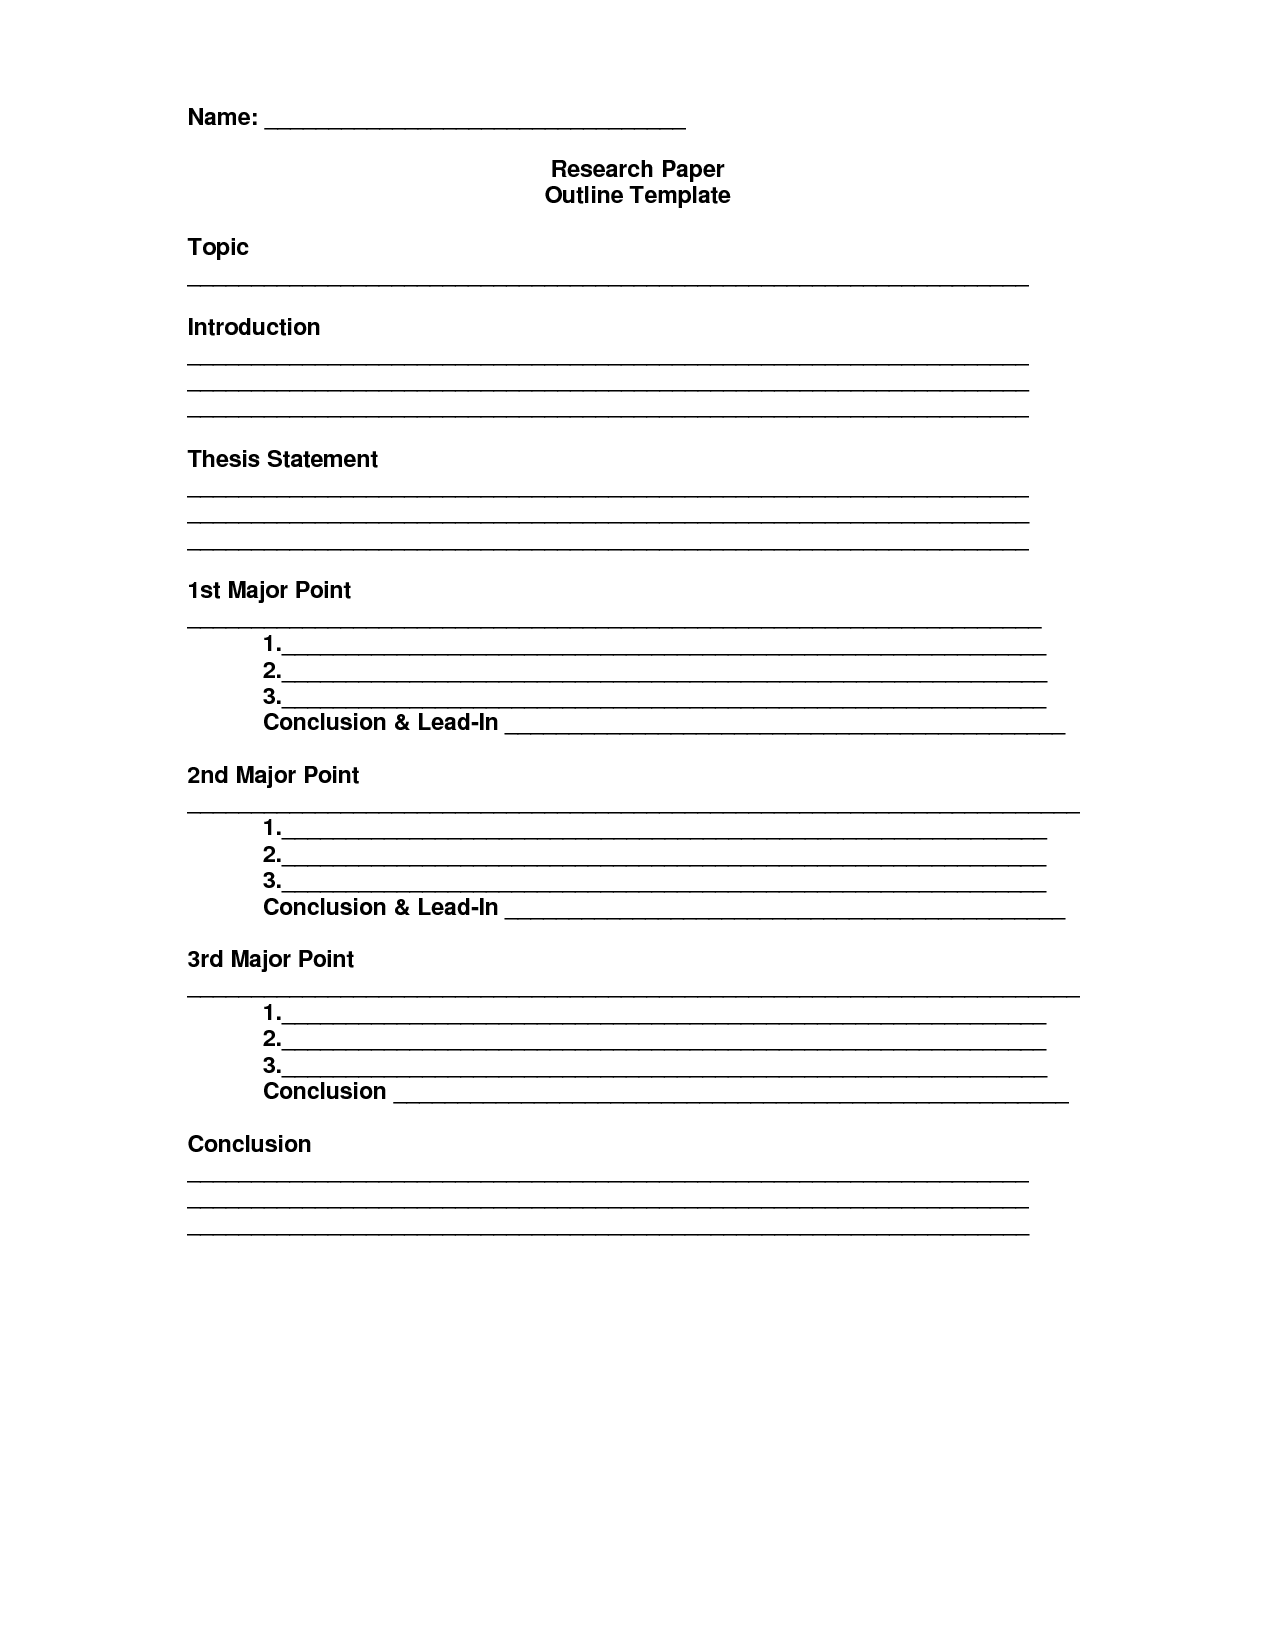 apa template doc